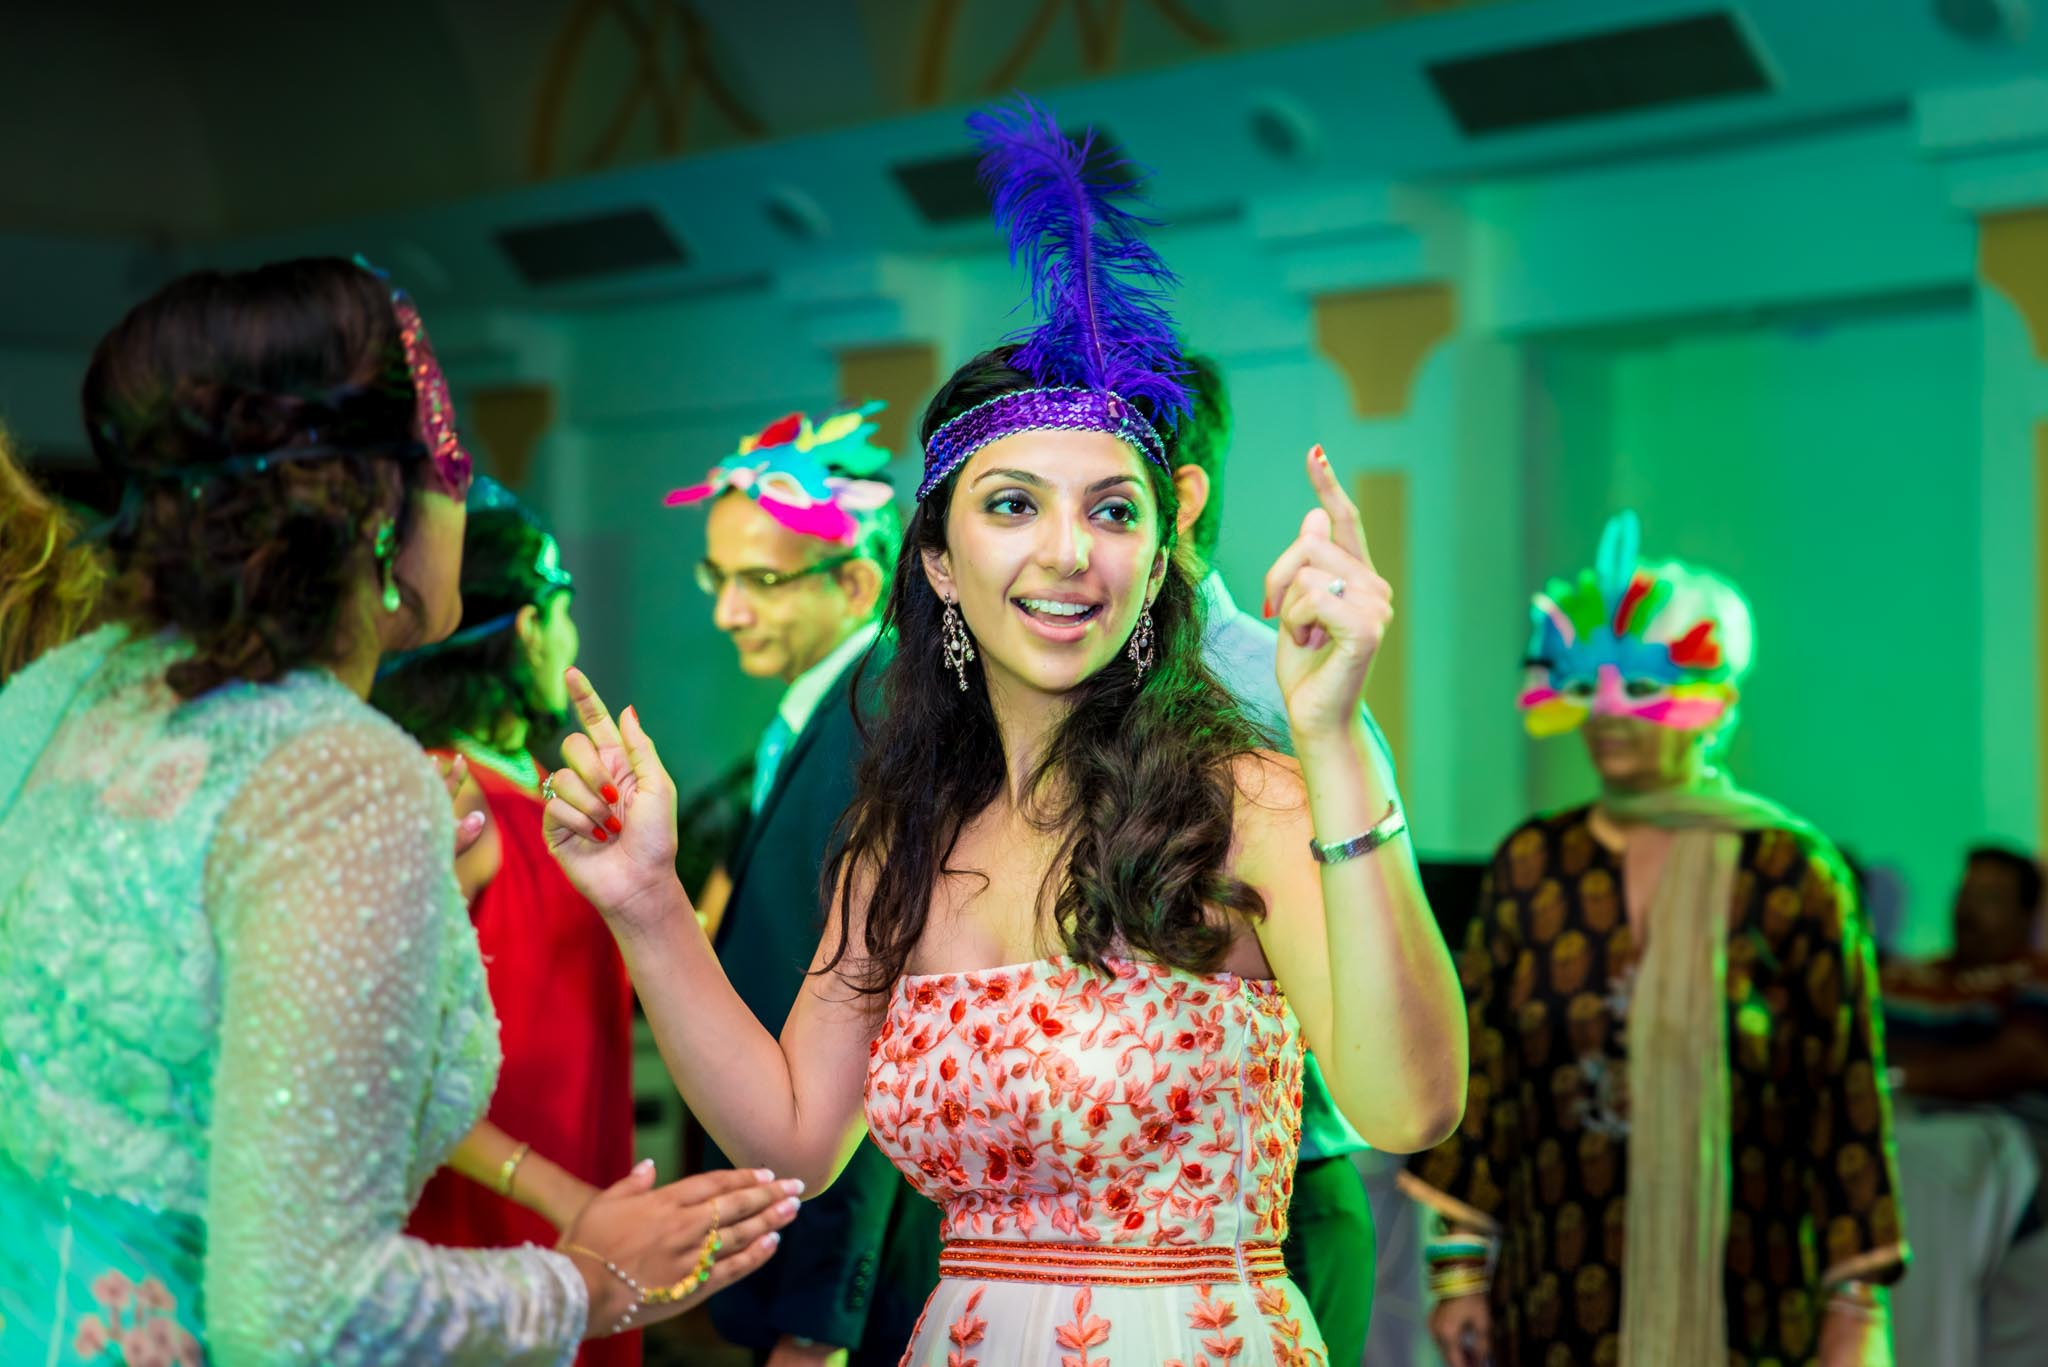 Big-Fat-Indian-Wedding-Destination-Goa-Cidade-de-goa-whatknot-candid-photography-155